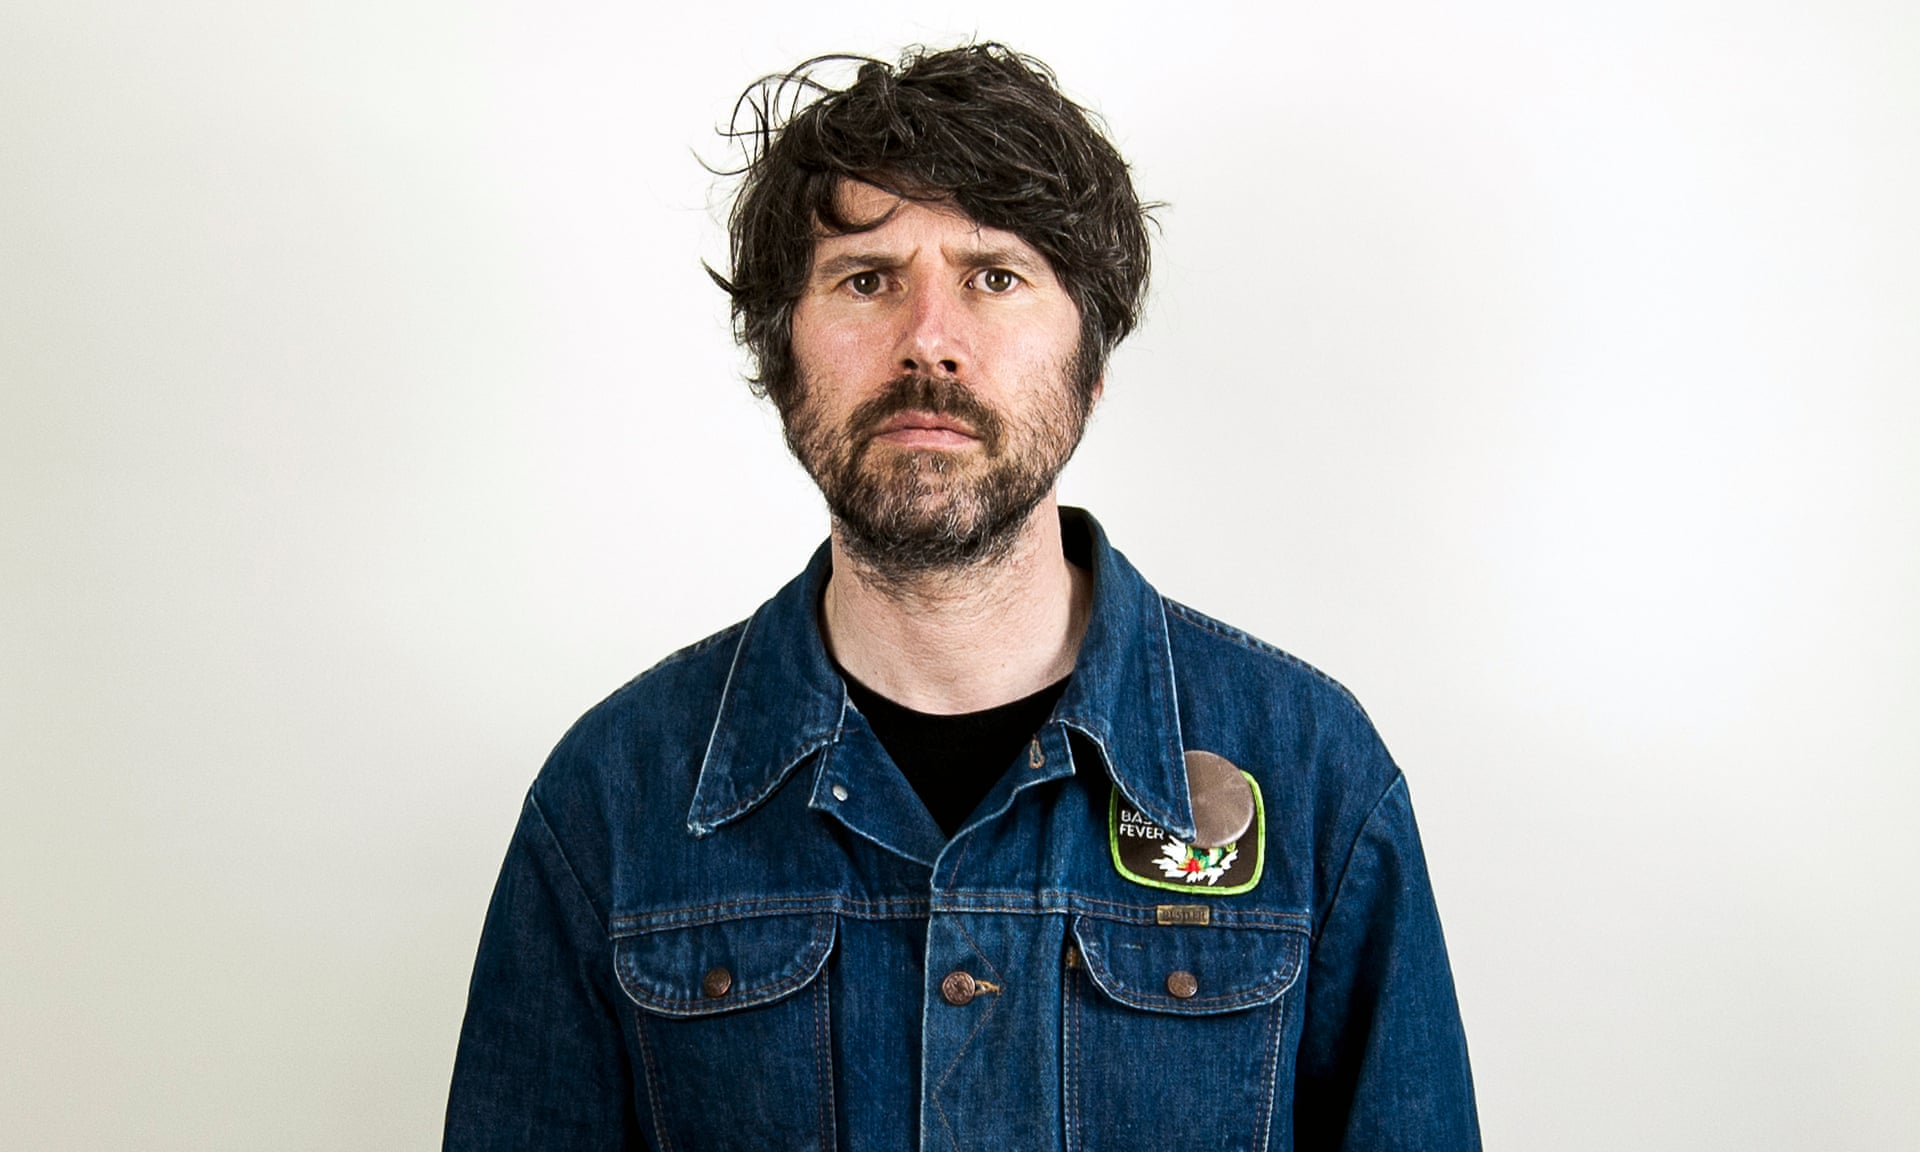 Listen: Gruff Rhys talks new album 'Pang' & celebrates 20 years of 'Guerrilla' on 'Kyle Meredith with...'